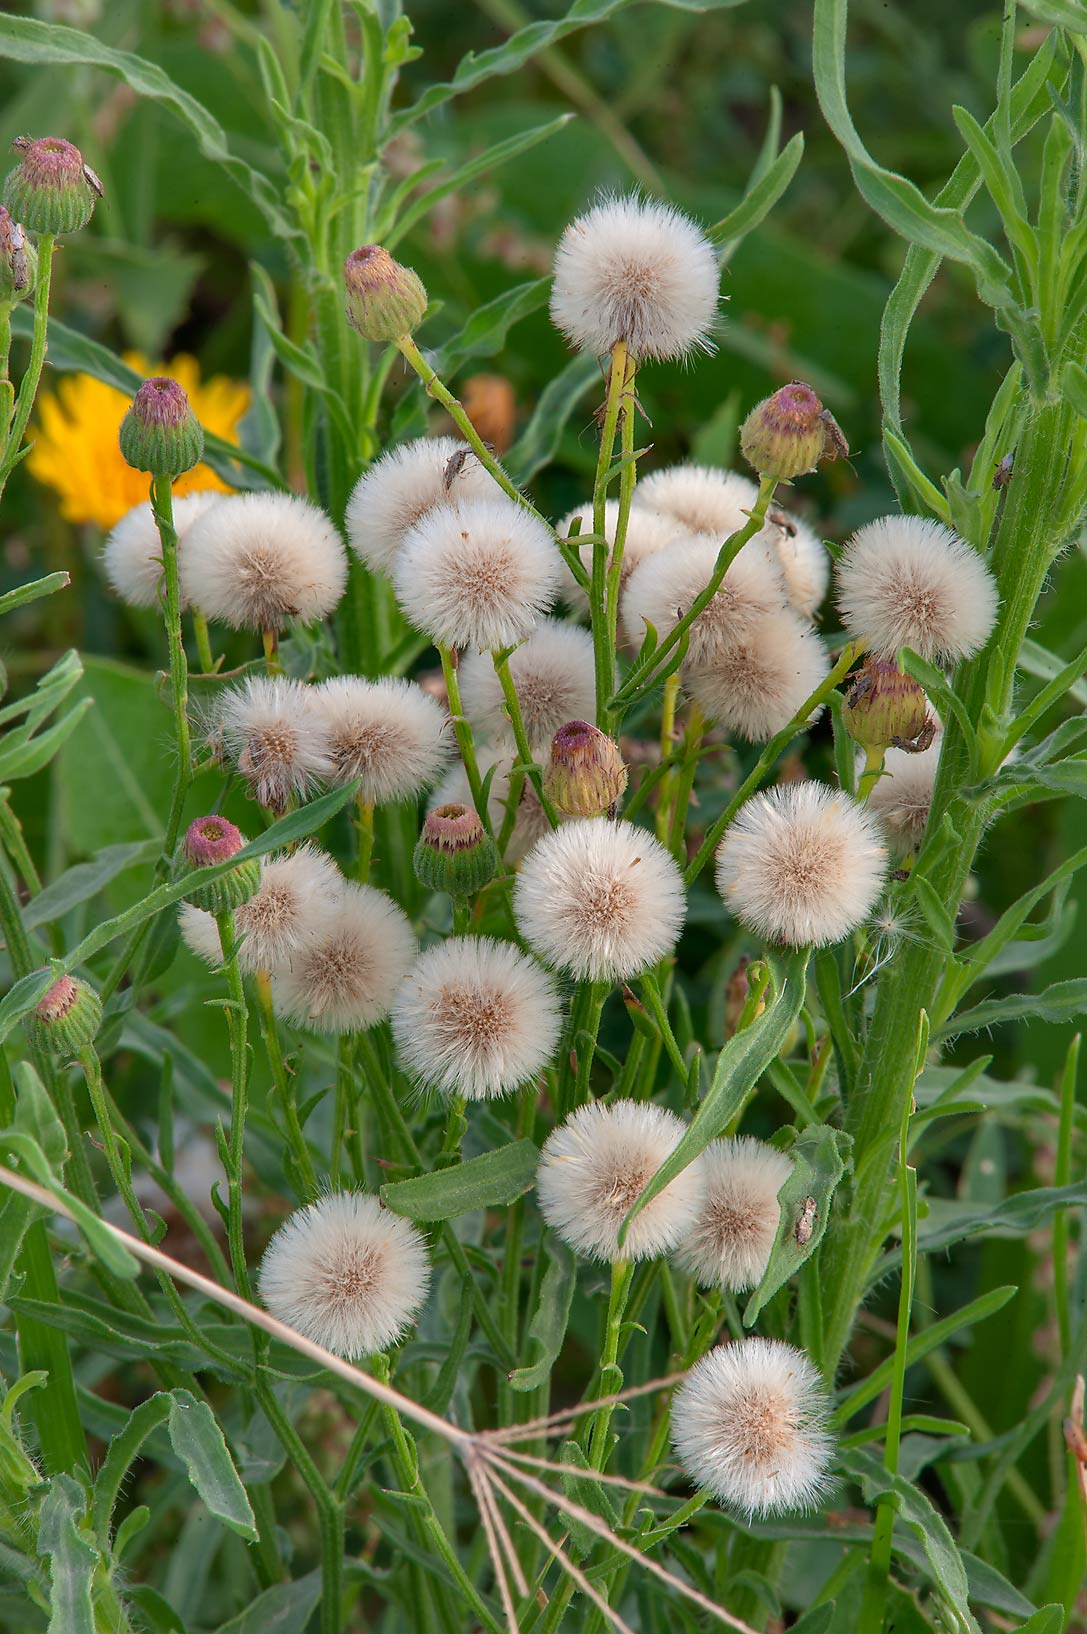 Seed heads of fleabane daisy (Erigeron...in Irkhaya (Irkaya) Farms. Qatar